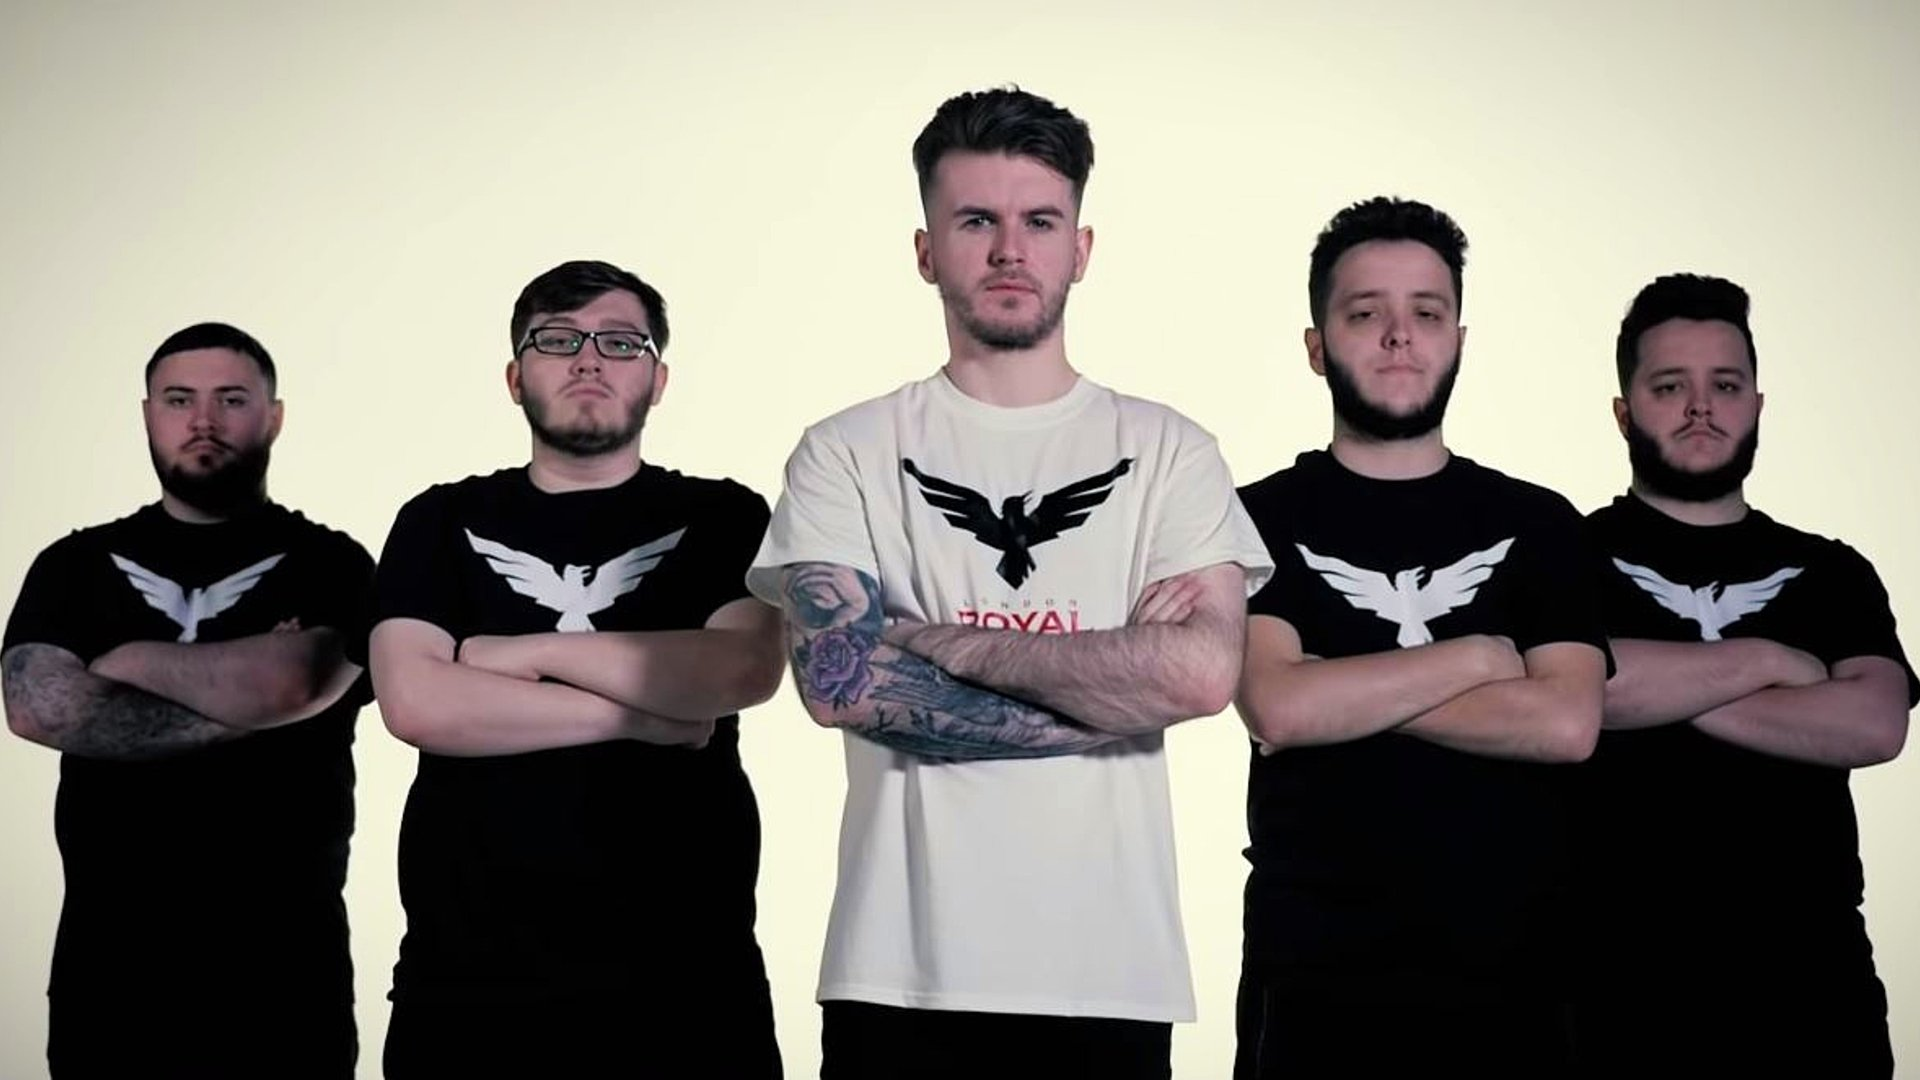 ReKTGlobal owns the esports team Rogue as well as the Call of Duty franchise team the Royal Ravens.